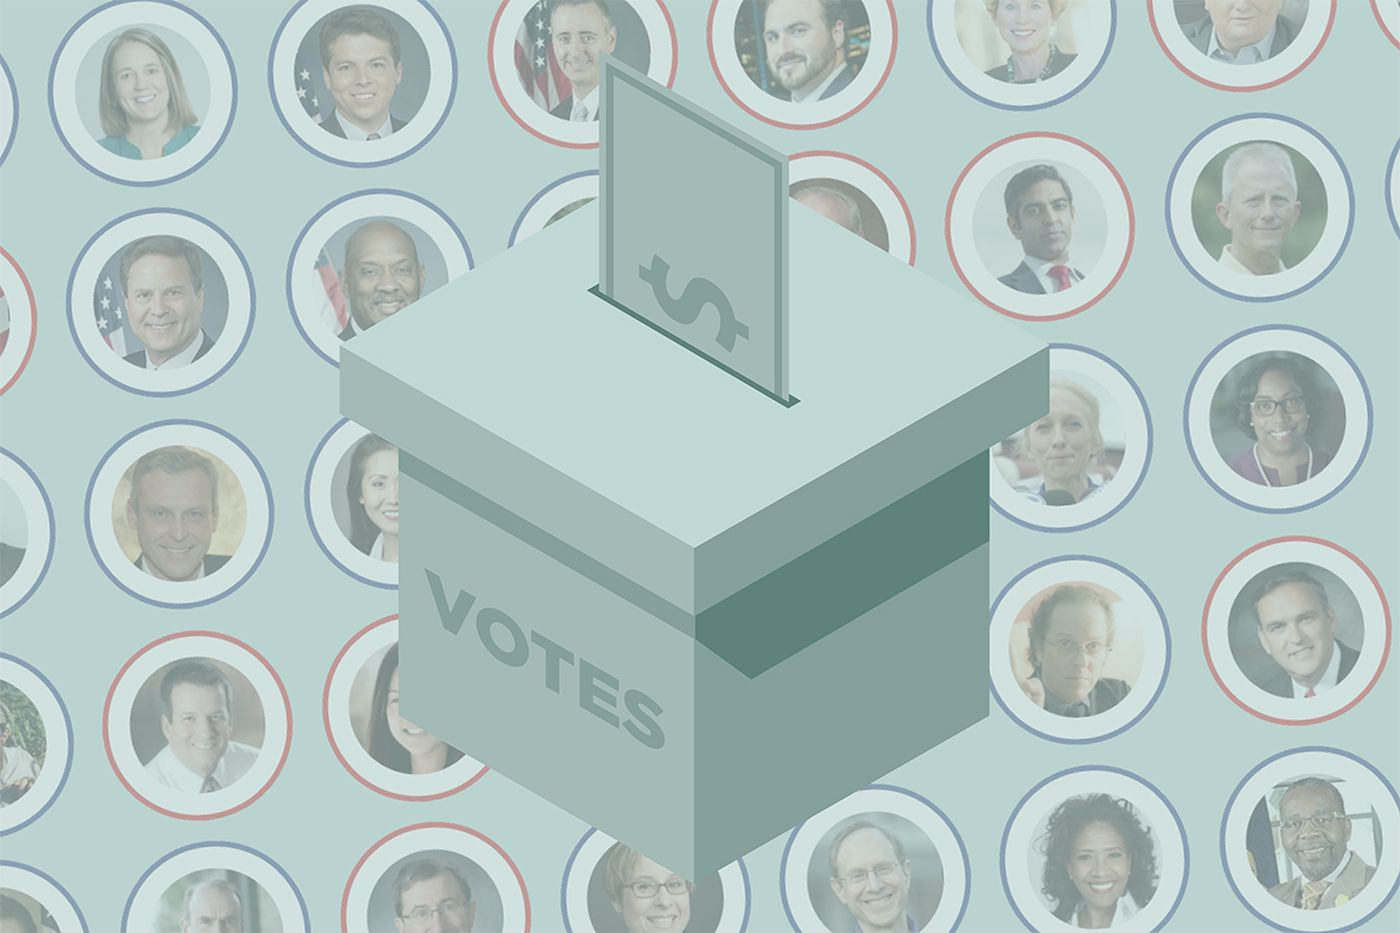 Top 2018 local election donors; Ex-Eagle charged with insider trading | Morning Newsletter